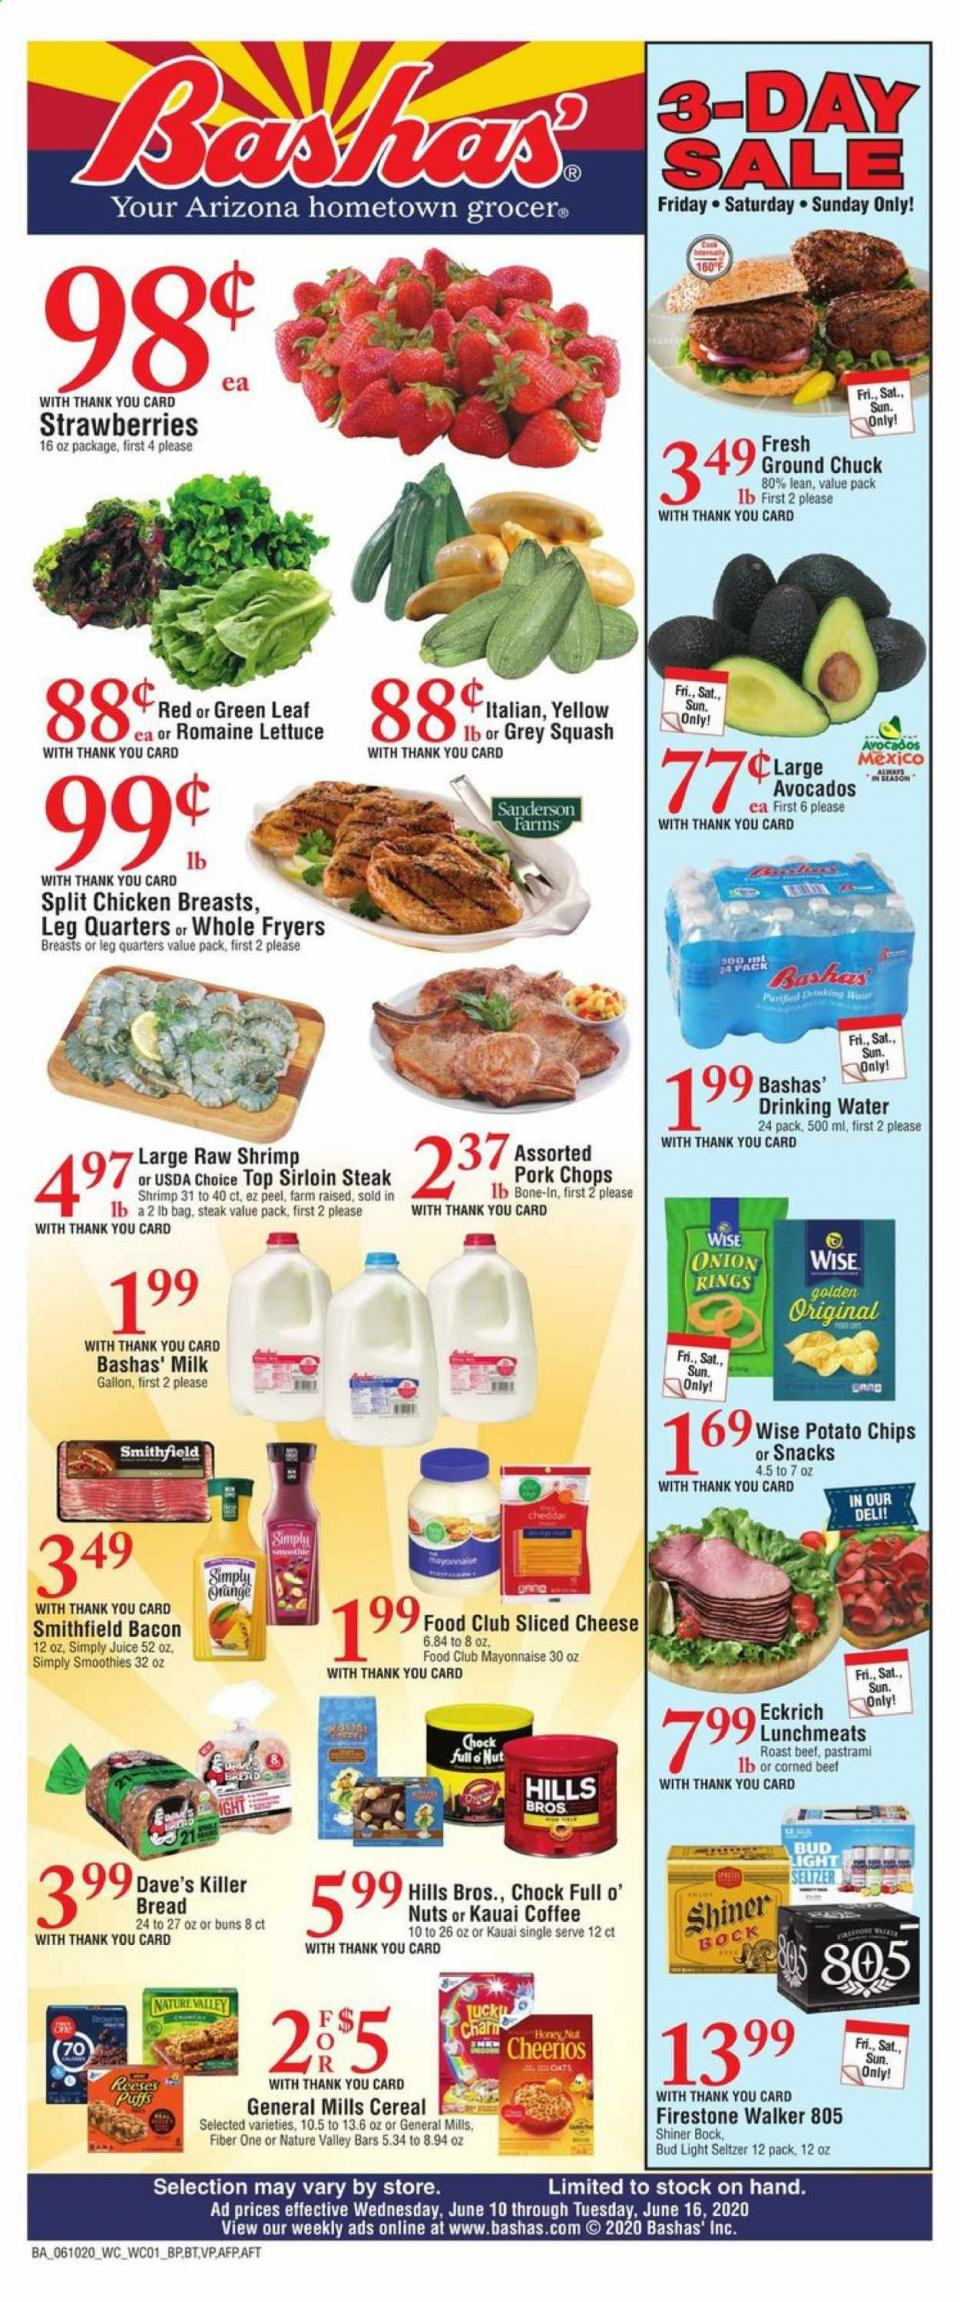 Bashas Mid June Weekly Ad valid from Jun 10 – 16, 2020